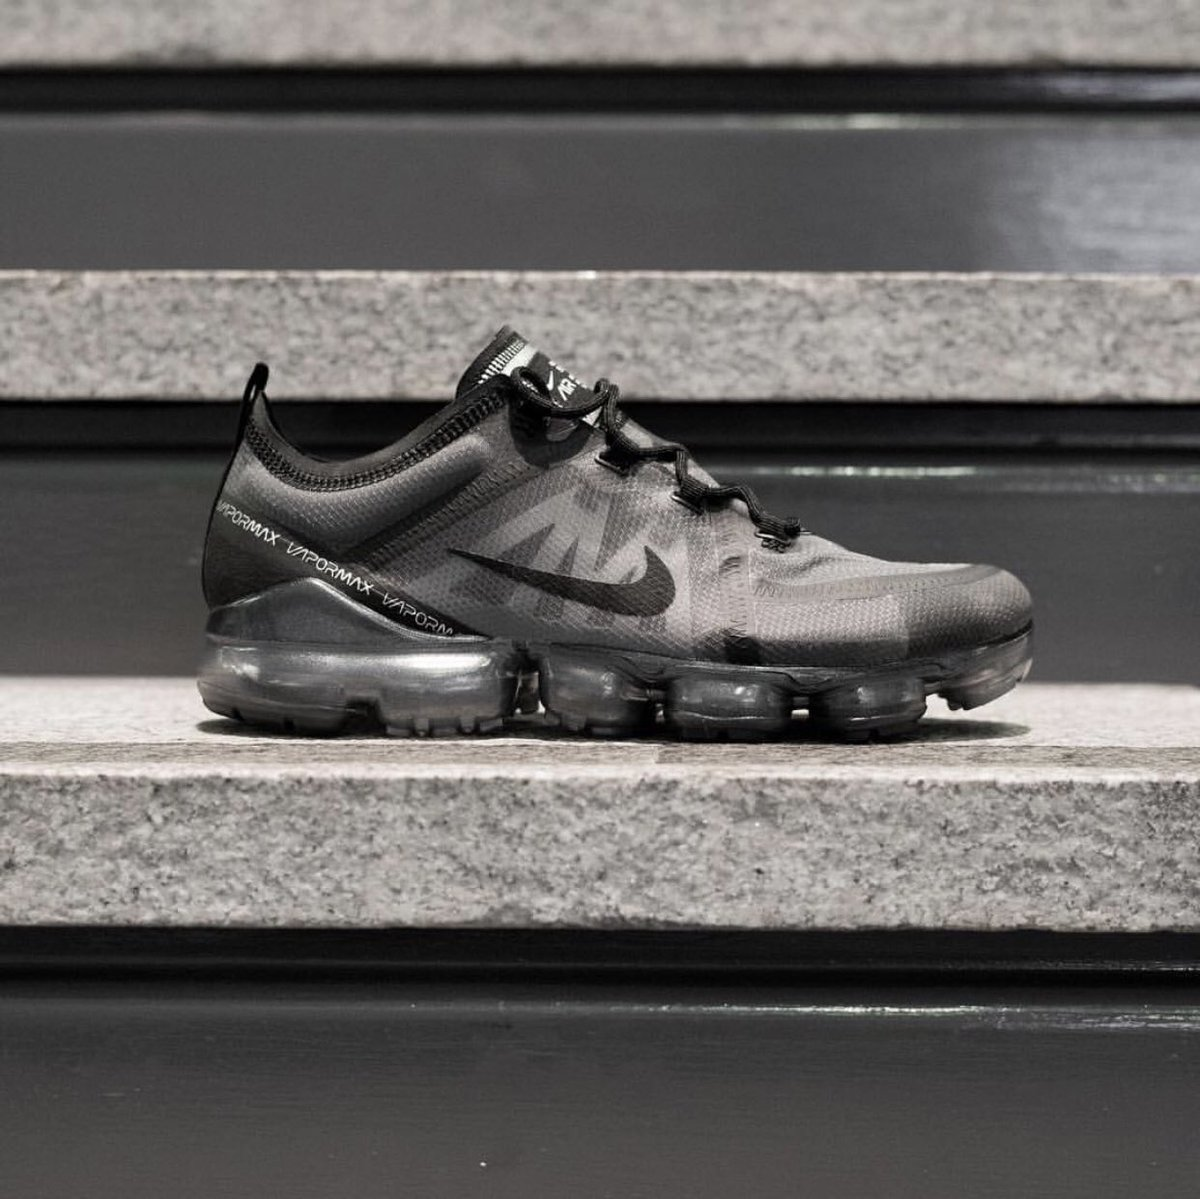 91ee5e3c23f63 airvapormax2019 hashtag on Twitter